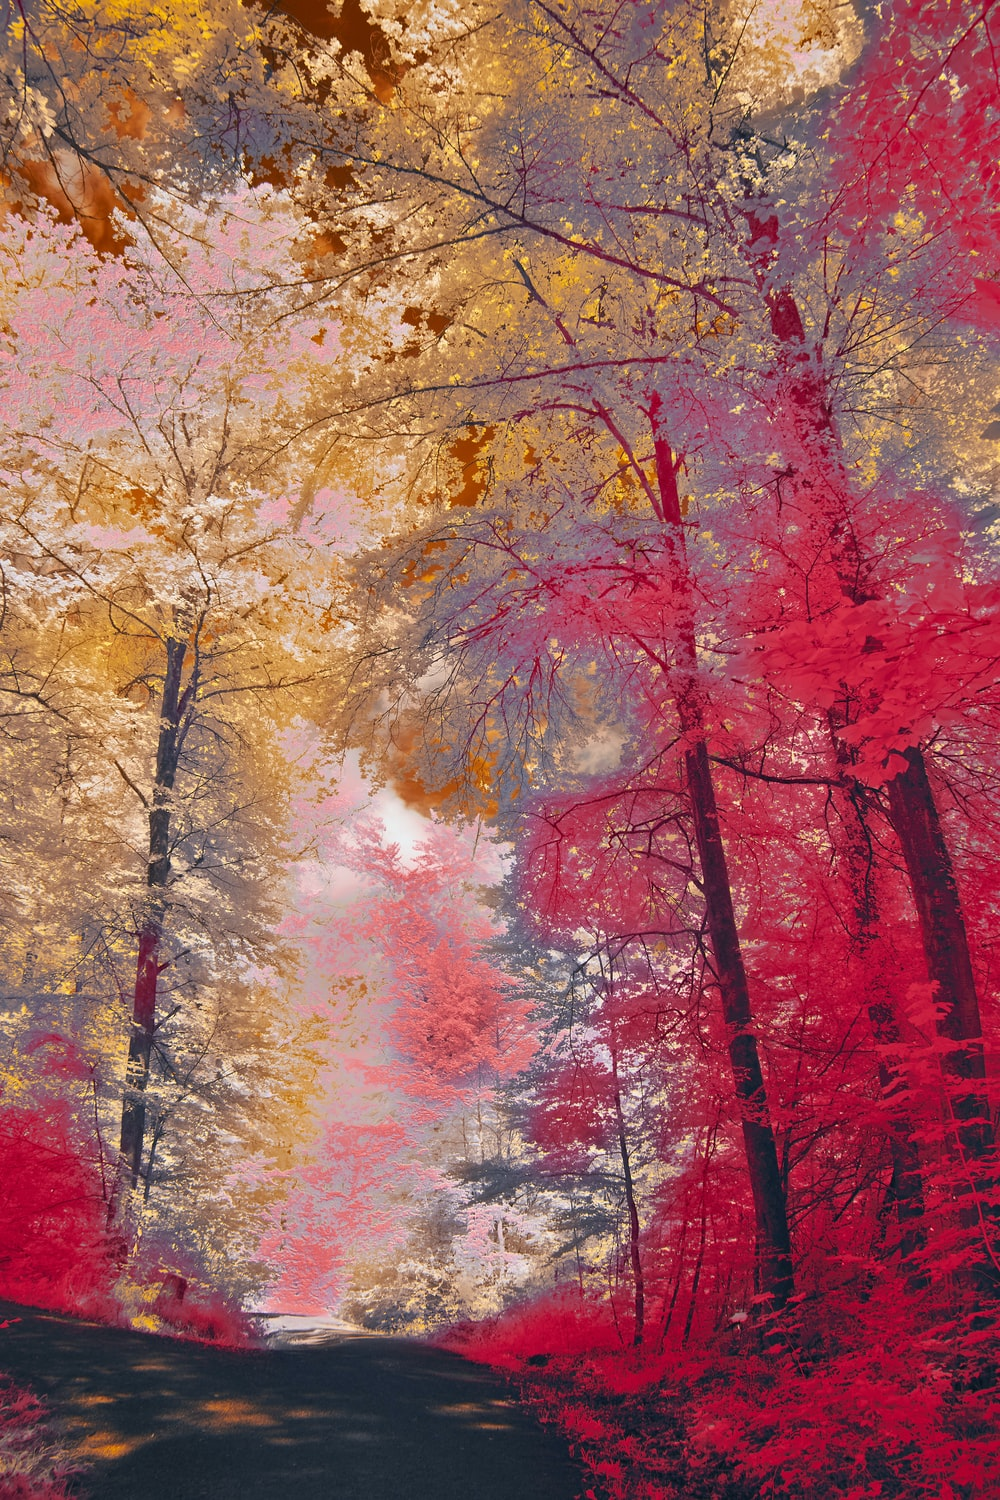 brown trees with red leaves